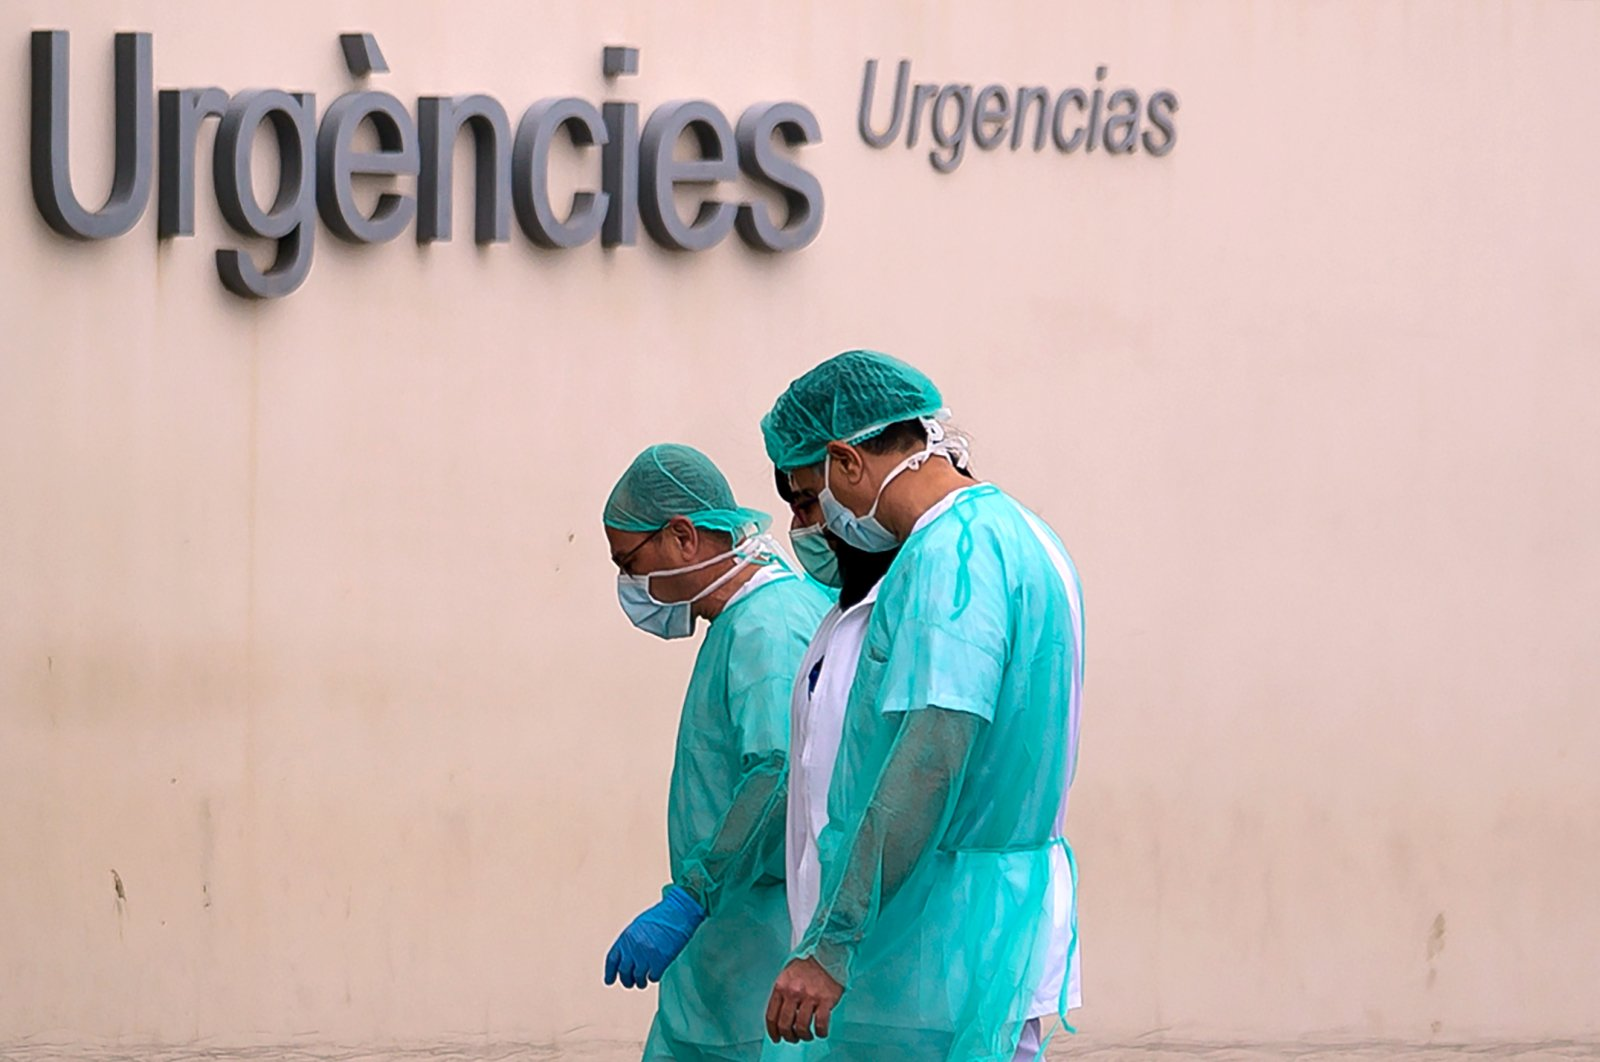 Health workers go back to work after a break at La Fe Hospital, Valencia, Wednesday, March 25, 2020. (AFP Photo)